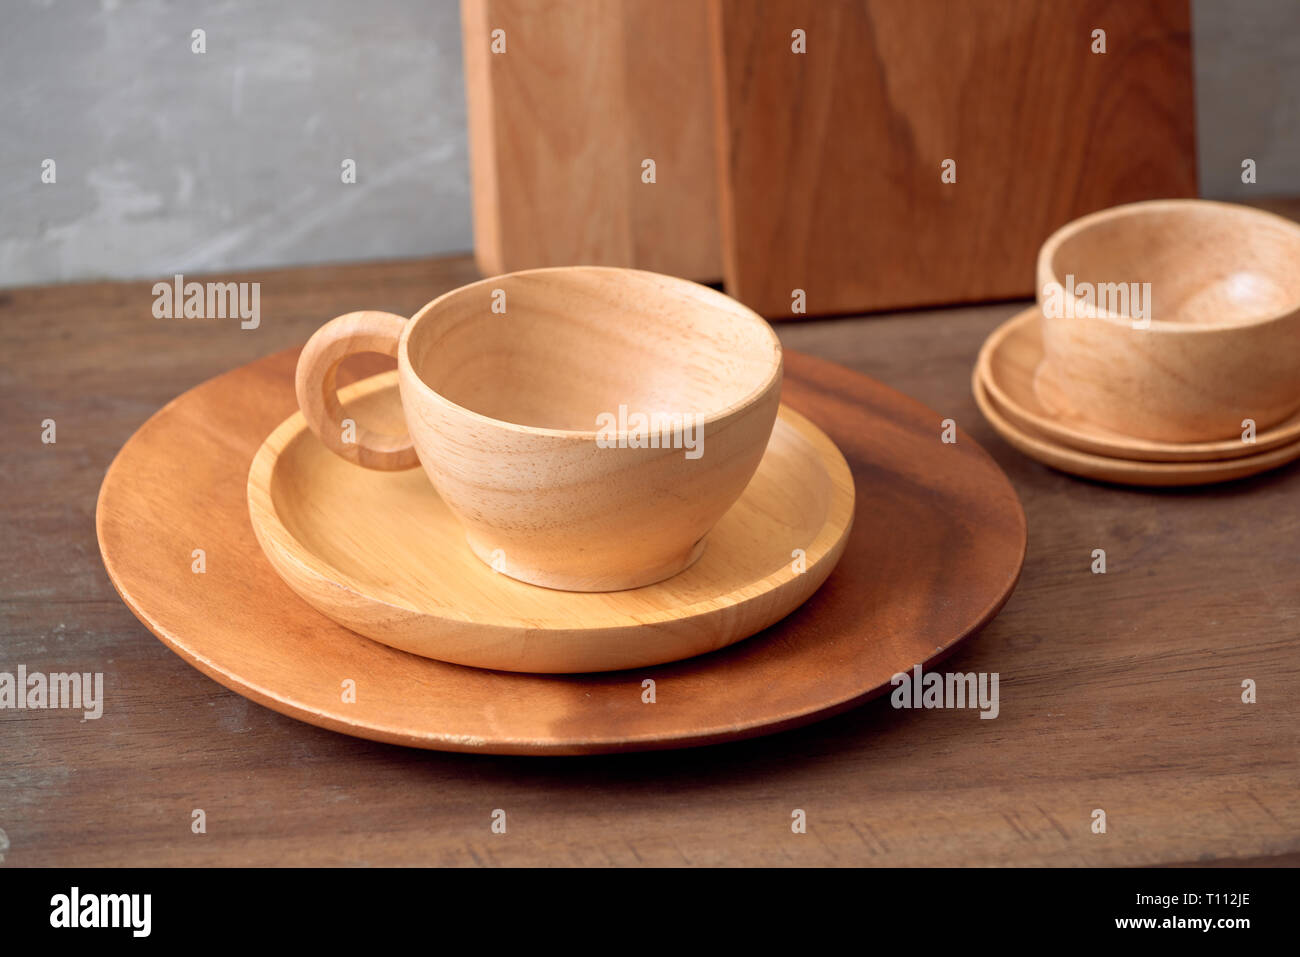 Kitchen tools for cooking on a wooden table on the background of a concrete wall. Copy space Stock Photo